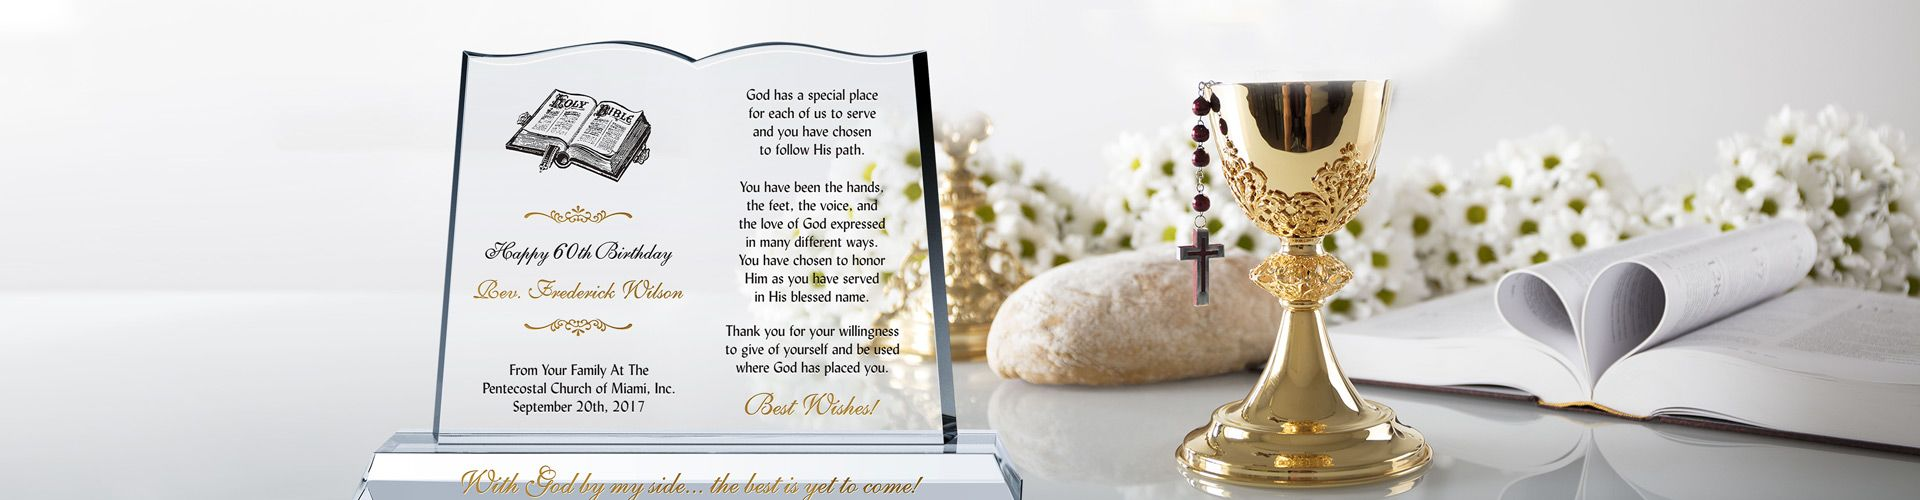 Personalized Pastor's Birthday Gift Plaques - Banner 1